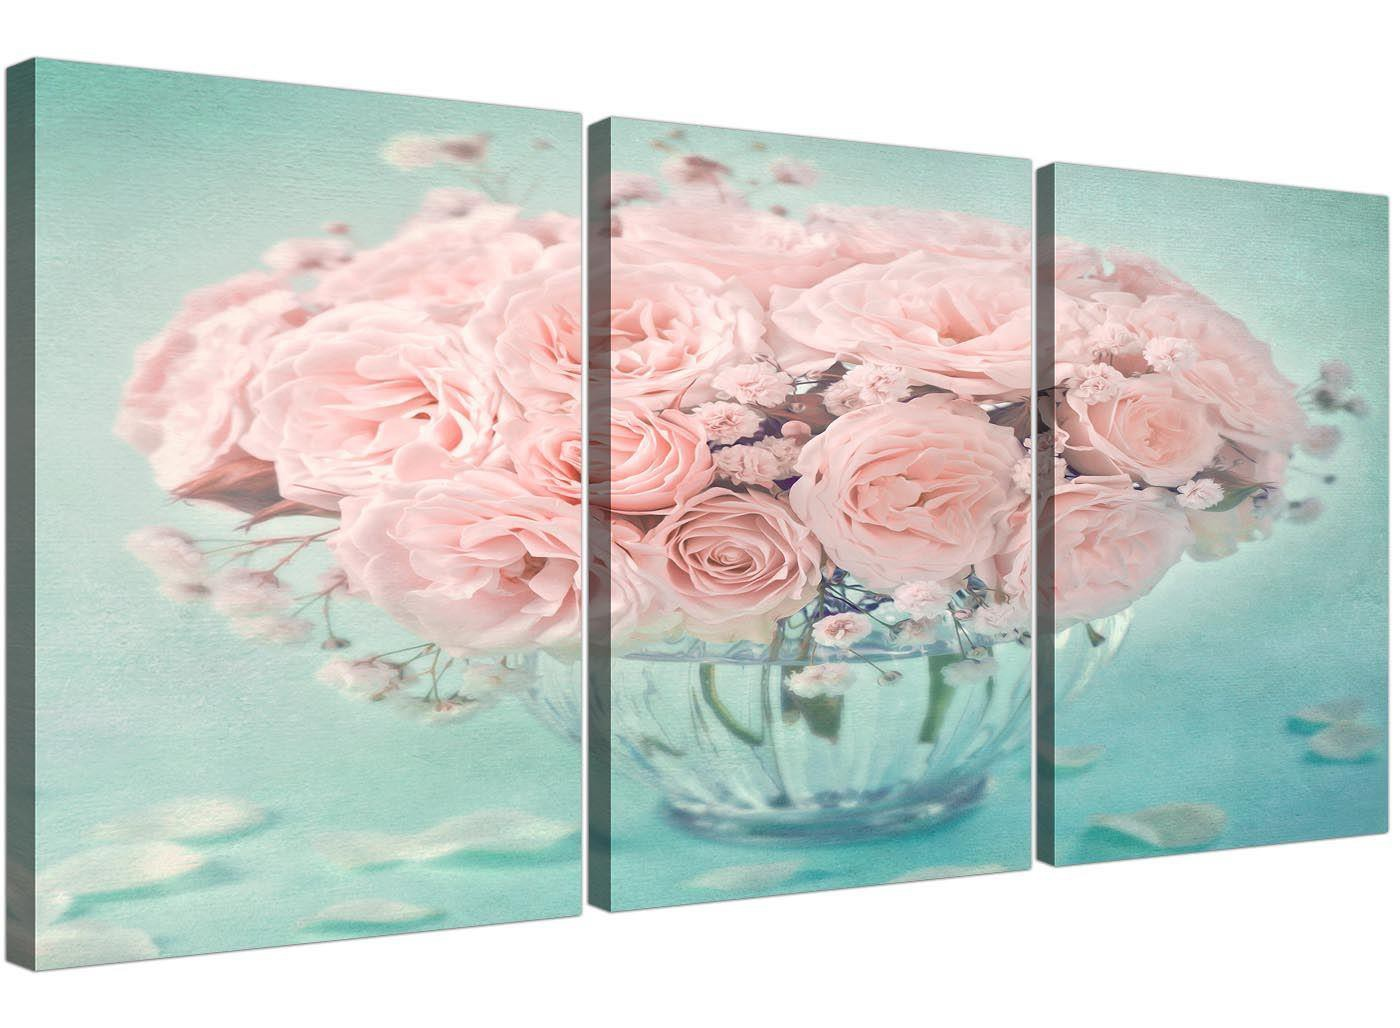 Duck Egg Blue And Pink Roses Flower Floral Shabby Chic Canvas Split